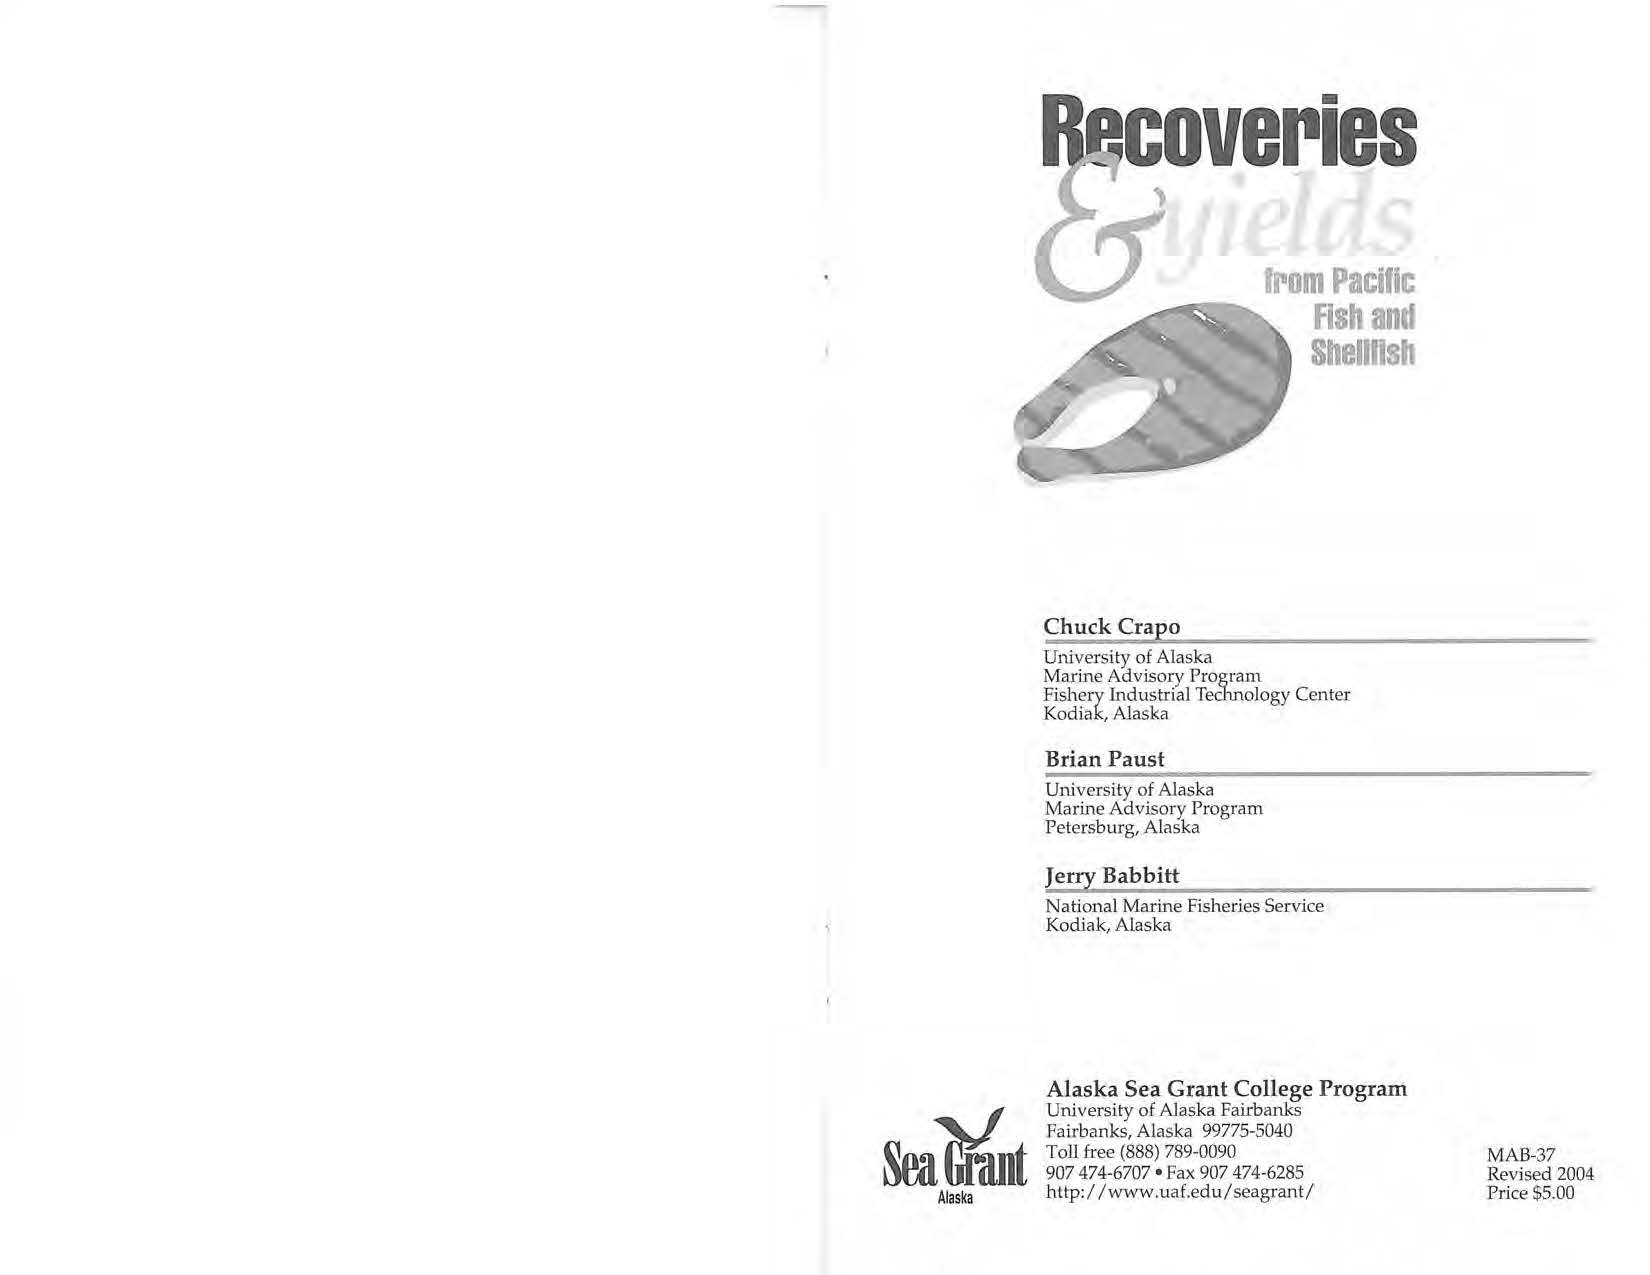 MAB-37PDF-Recoveries and Yields fro_Page_02.jpg